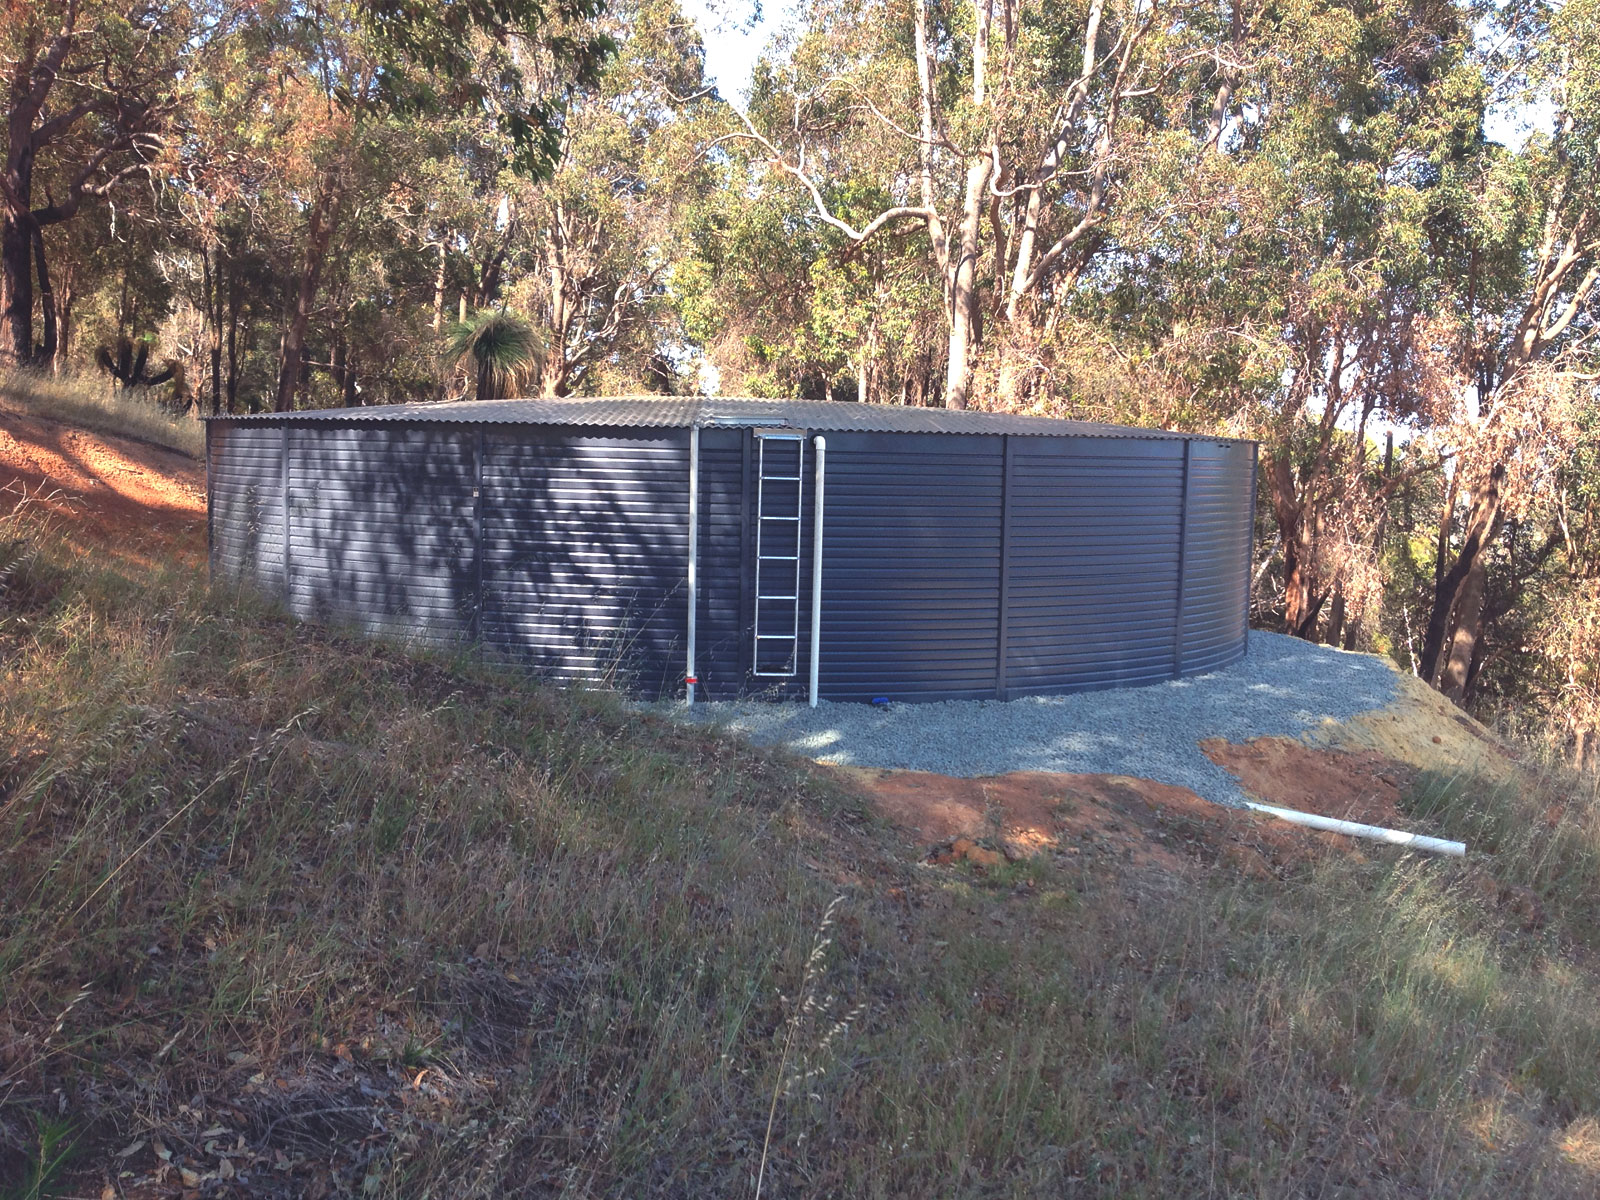 Huckleberry Tanks & Sheds - Installation of Fire Tanks